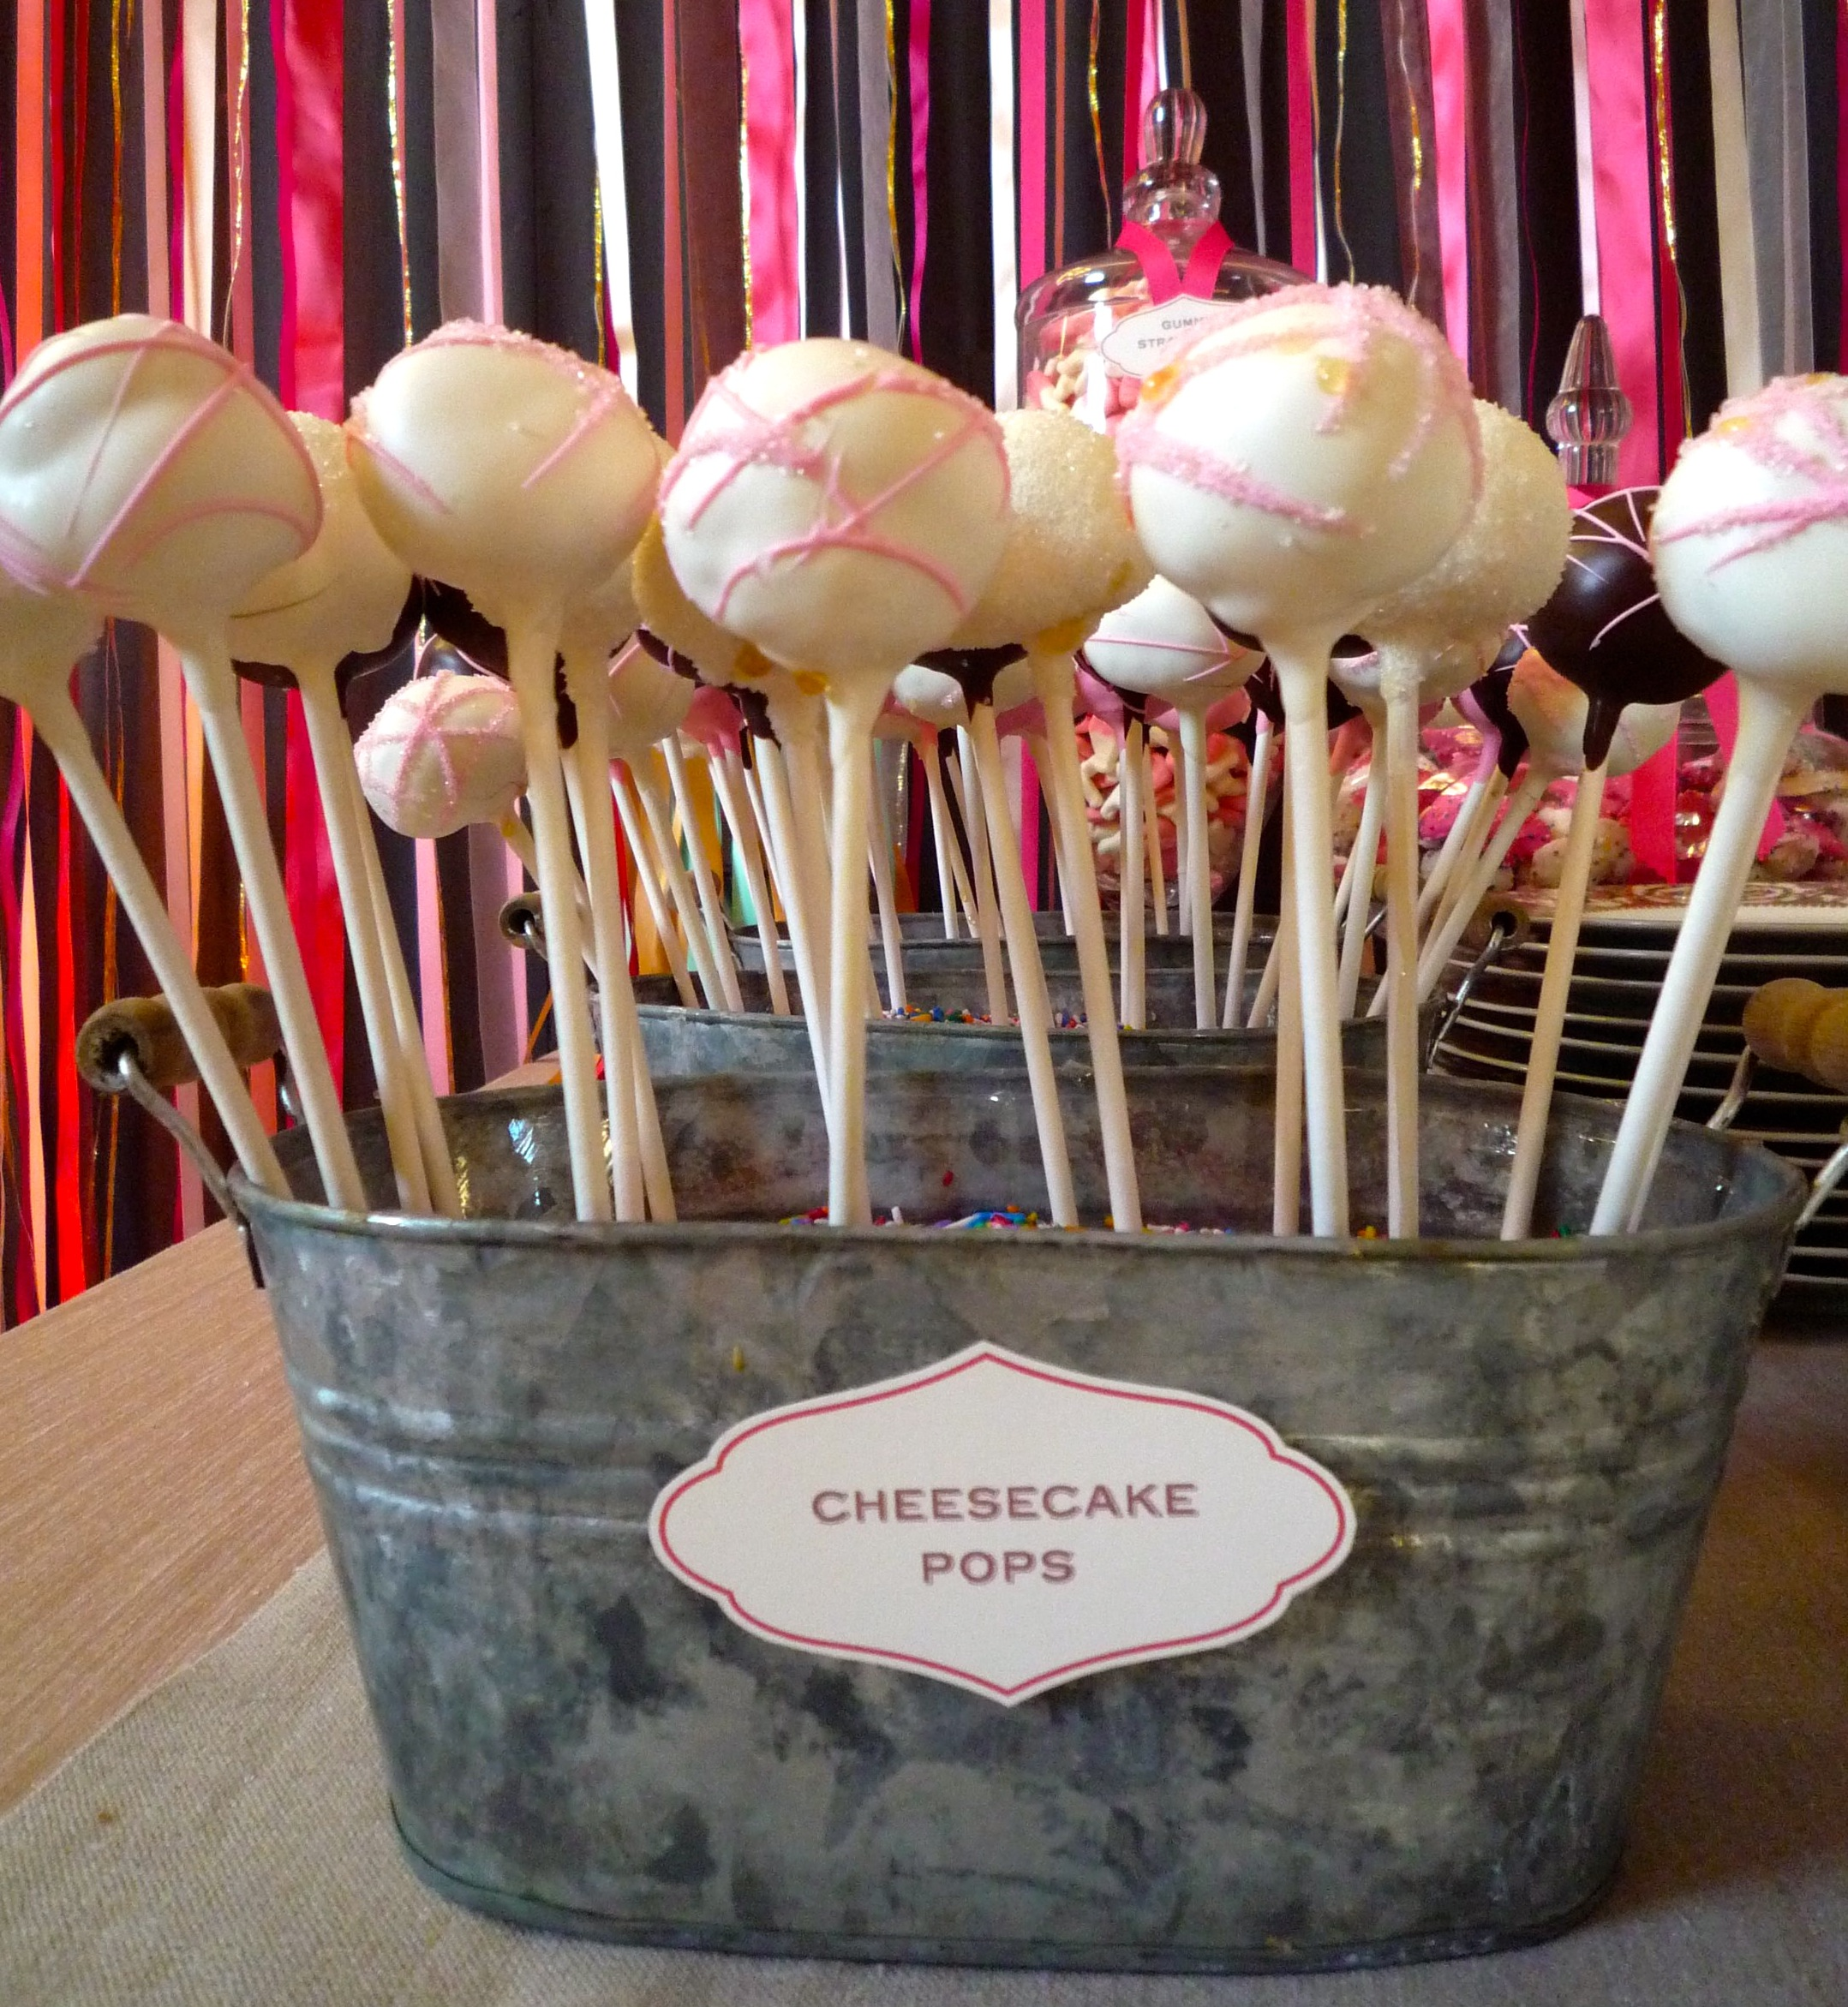 ... , Part 5: Cheesecake Pops by Sweet Lauren Cakes » Cheesecake Pops